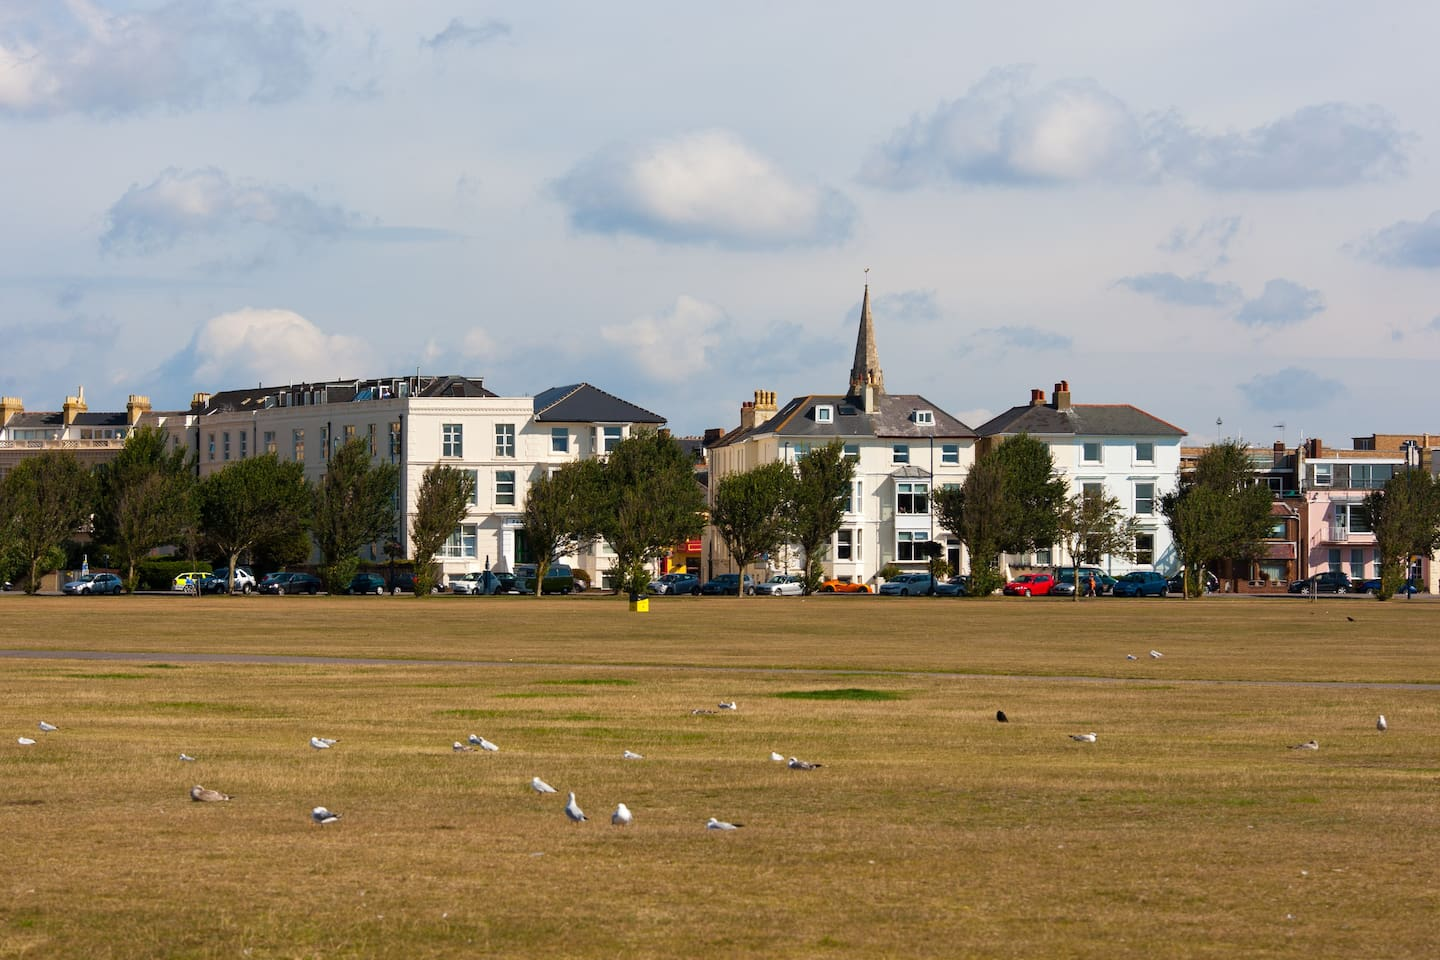 From the park known as Southsea Common looking back at apartment block middle of photo.